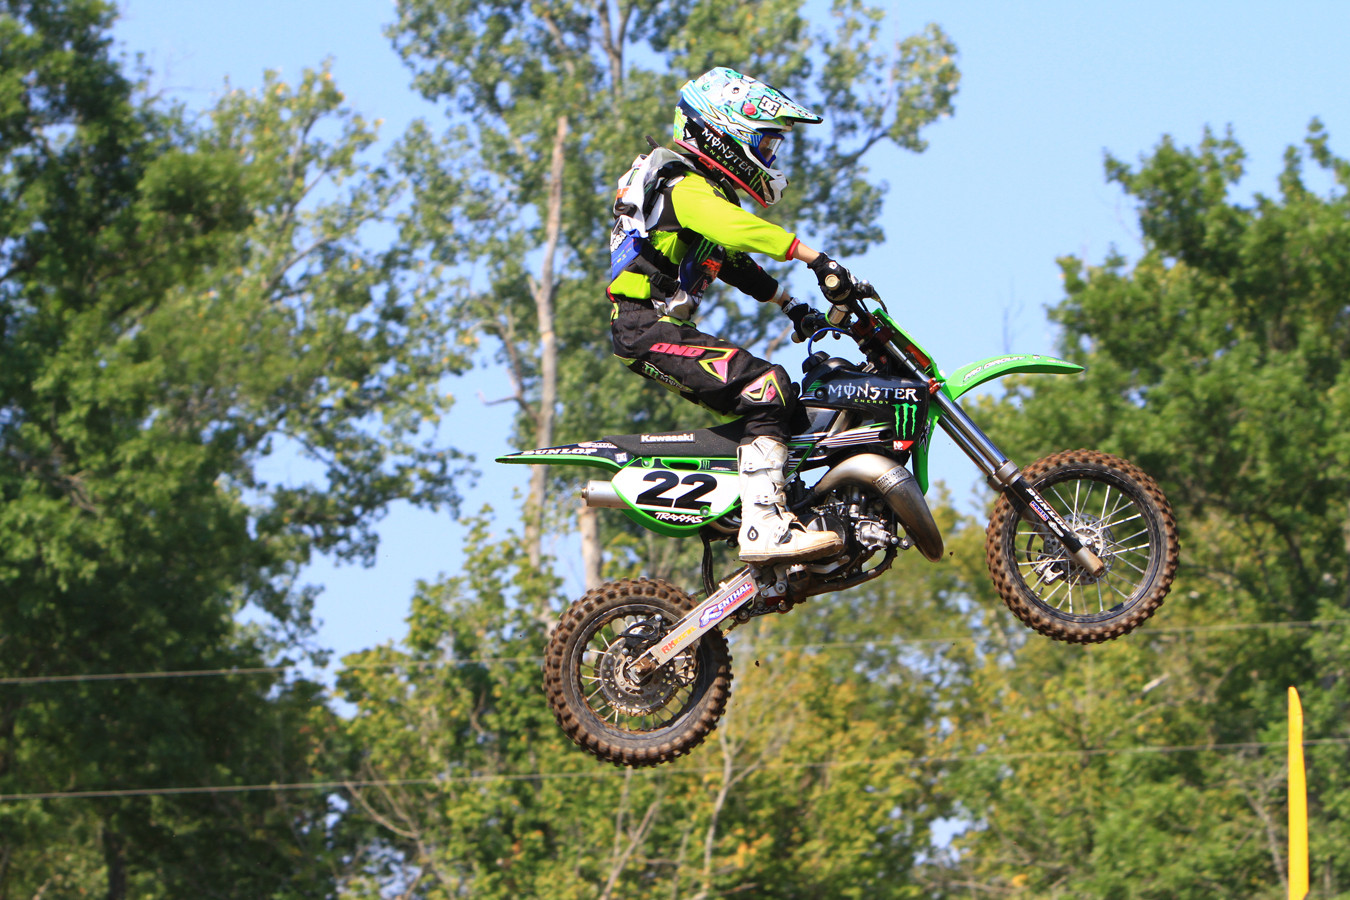 Carson Mumford - Day 2: 2012 Red Bull AMA Amateur National Motocross Championships - Motocross Pictures - Vital MX